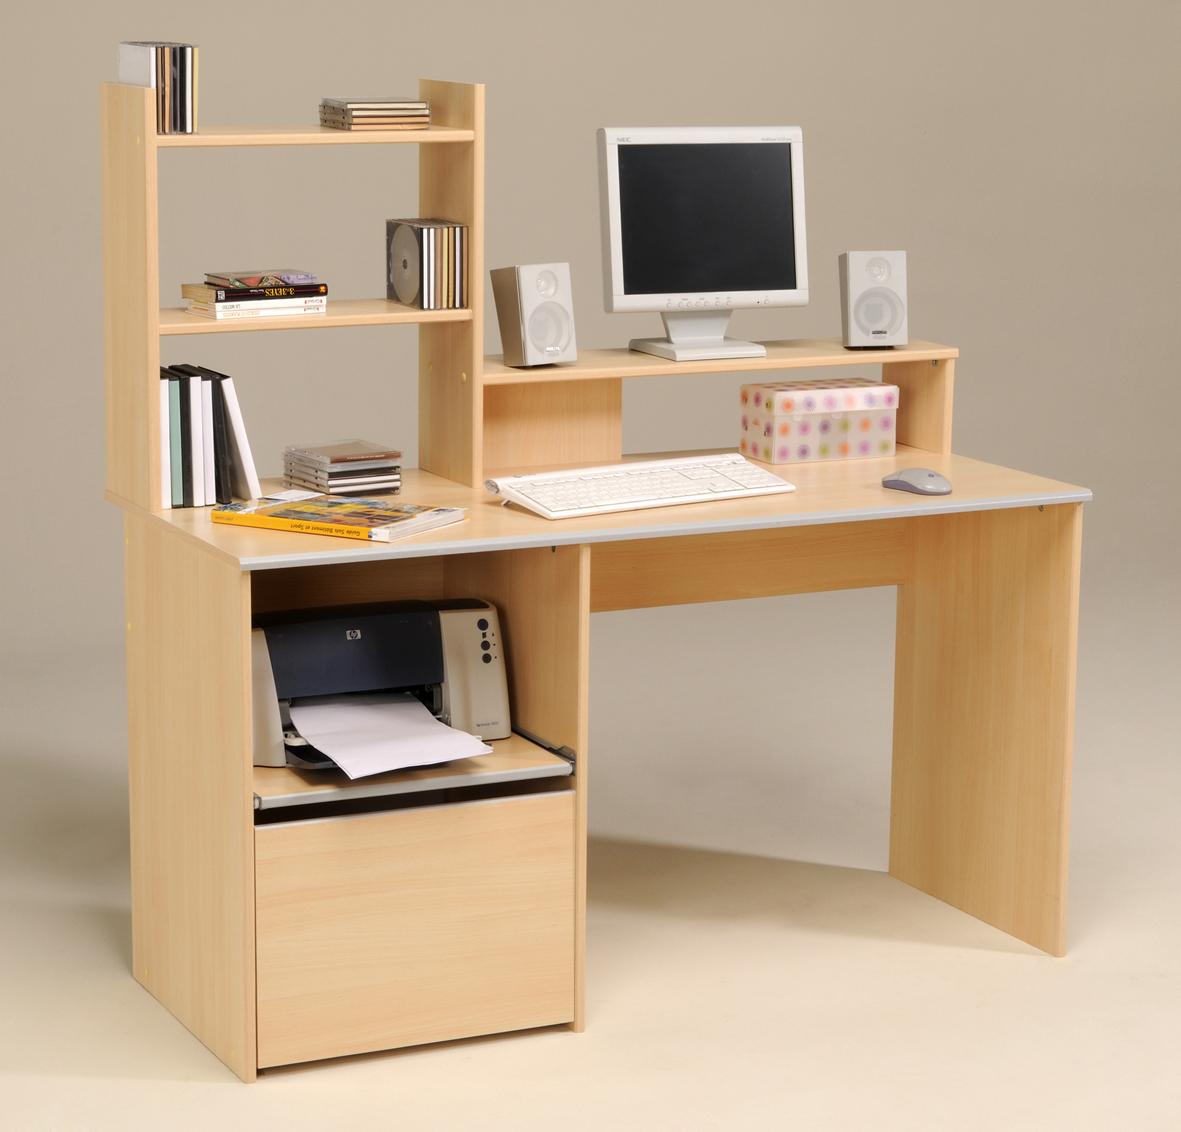 Bureau meuble for Bureau meuble camif